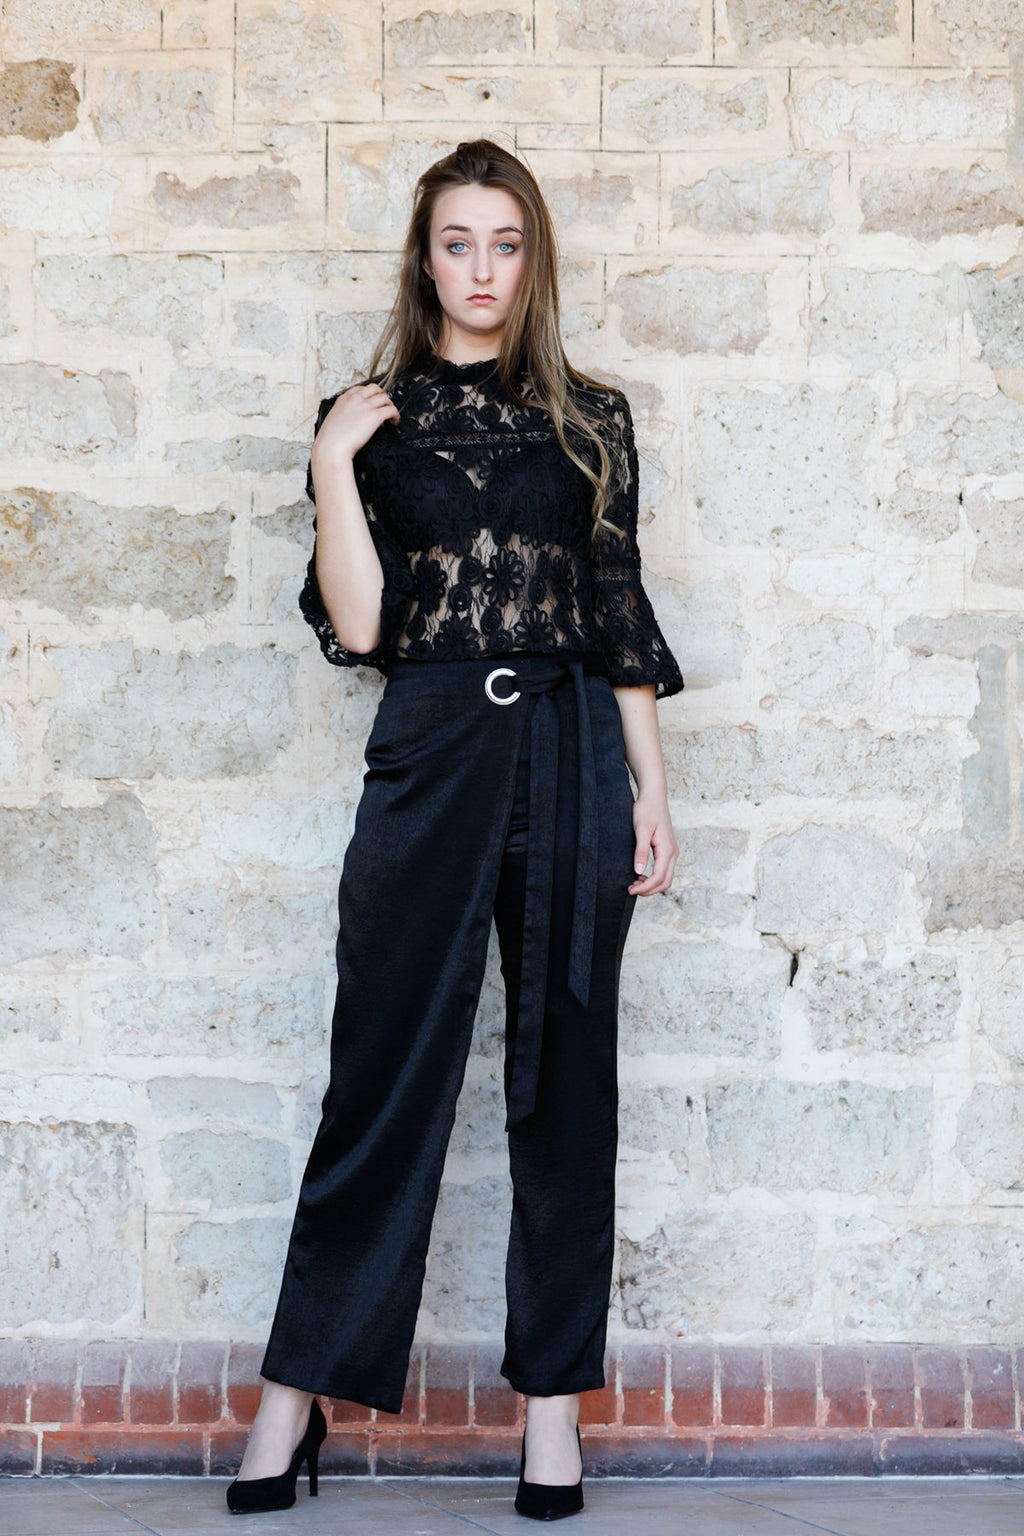 Eyelet Detail Straight Leg Wrap pants Pants The Fashion Advocate ethical Australian fashion designer boutique Melbourne sustainable clothes